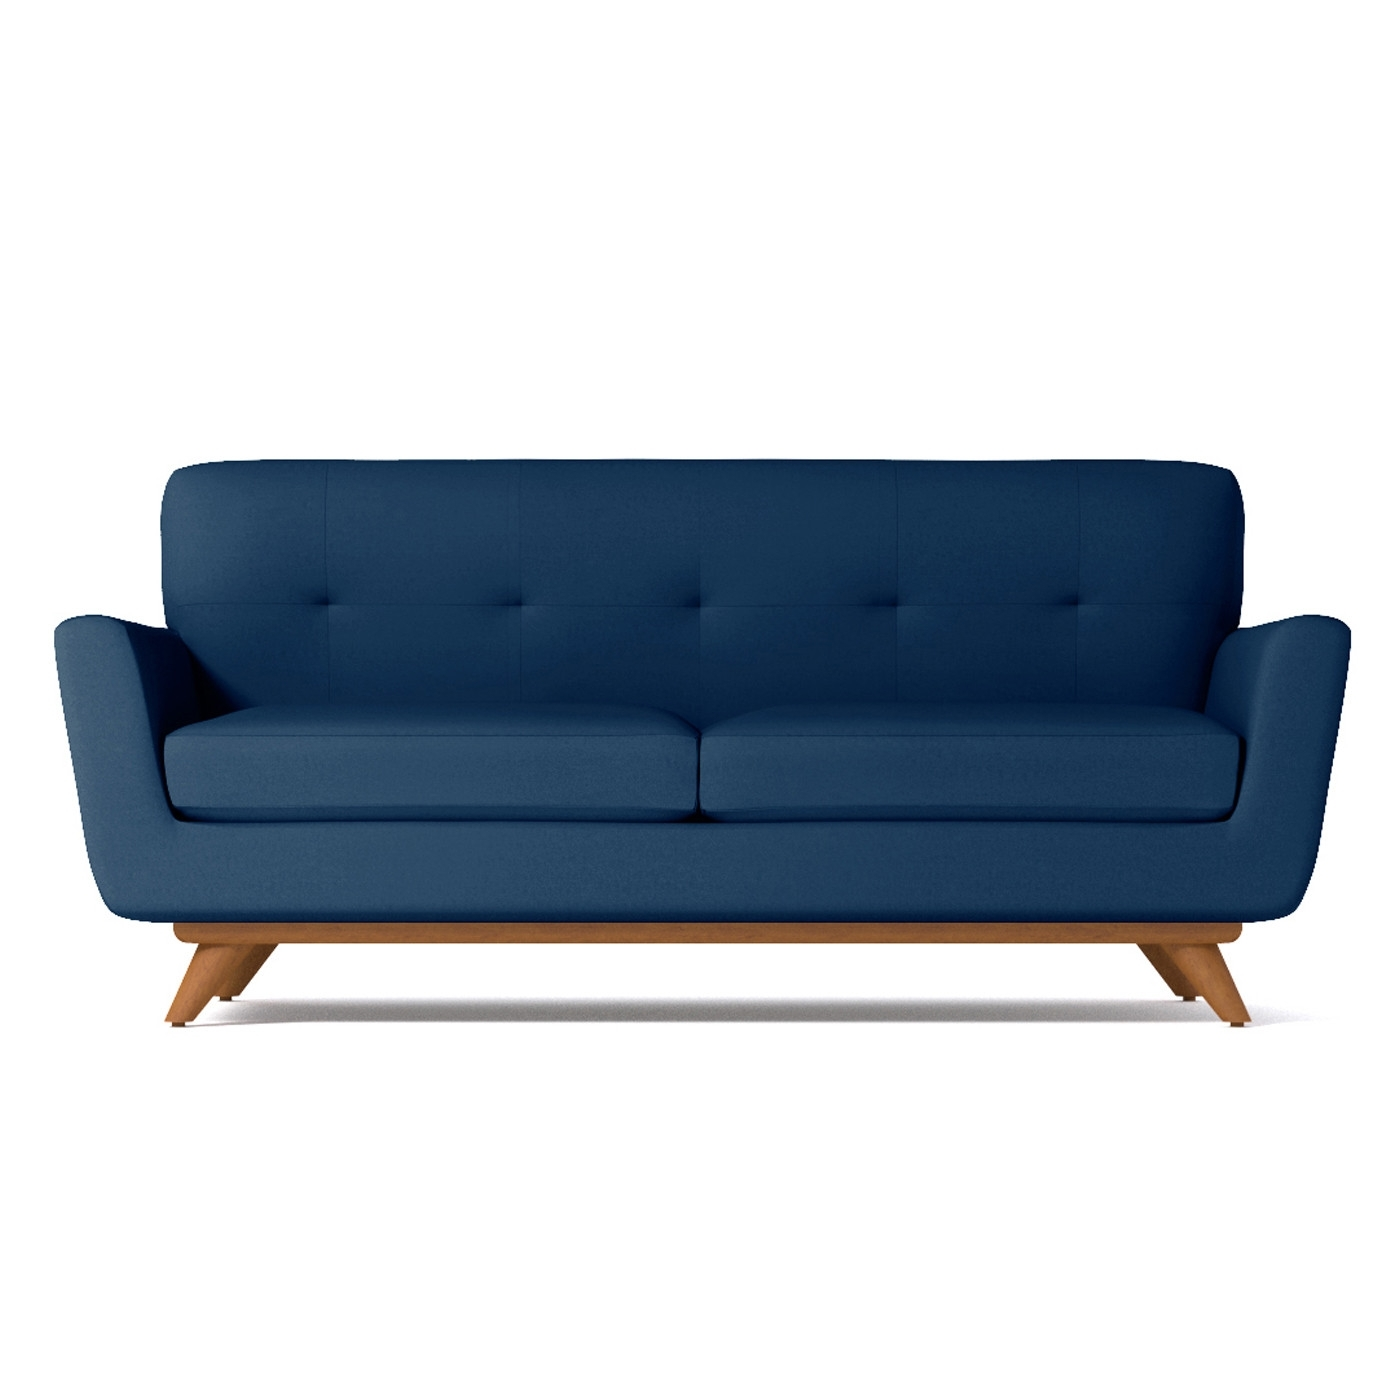 Famous Awesome Apartment Size Sofa: Best Furniture For Small Living Room Within Apartment Size Sofas (View 7 of 15)